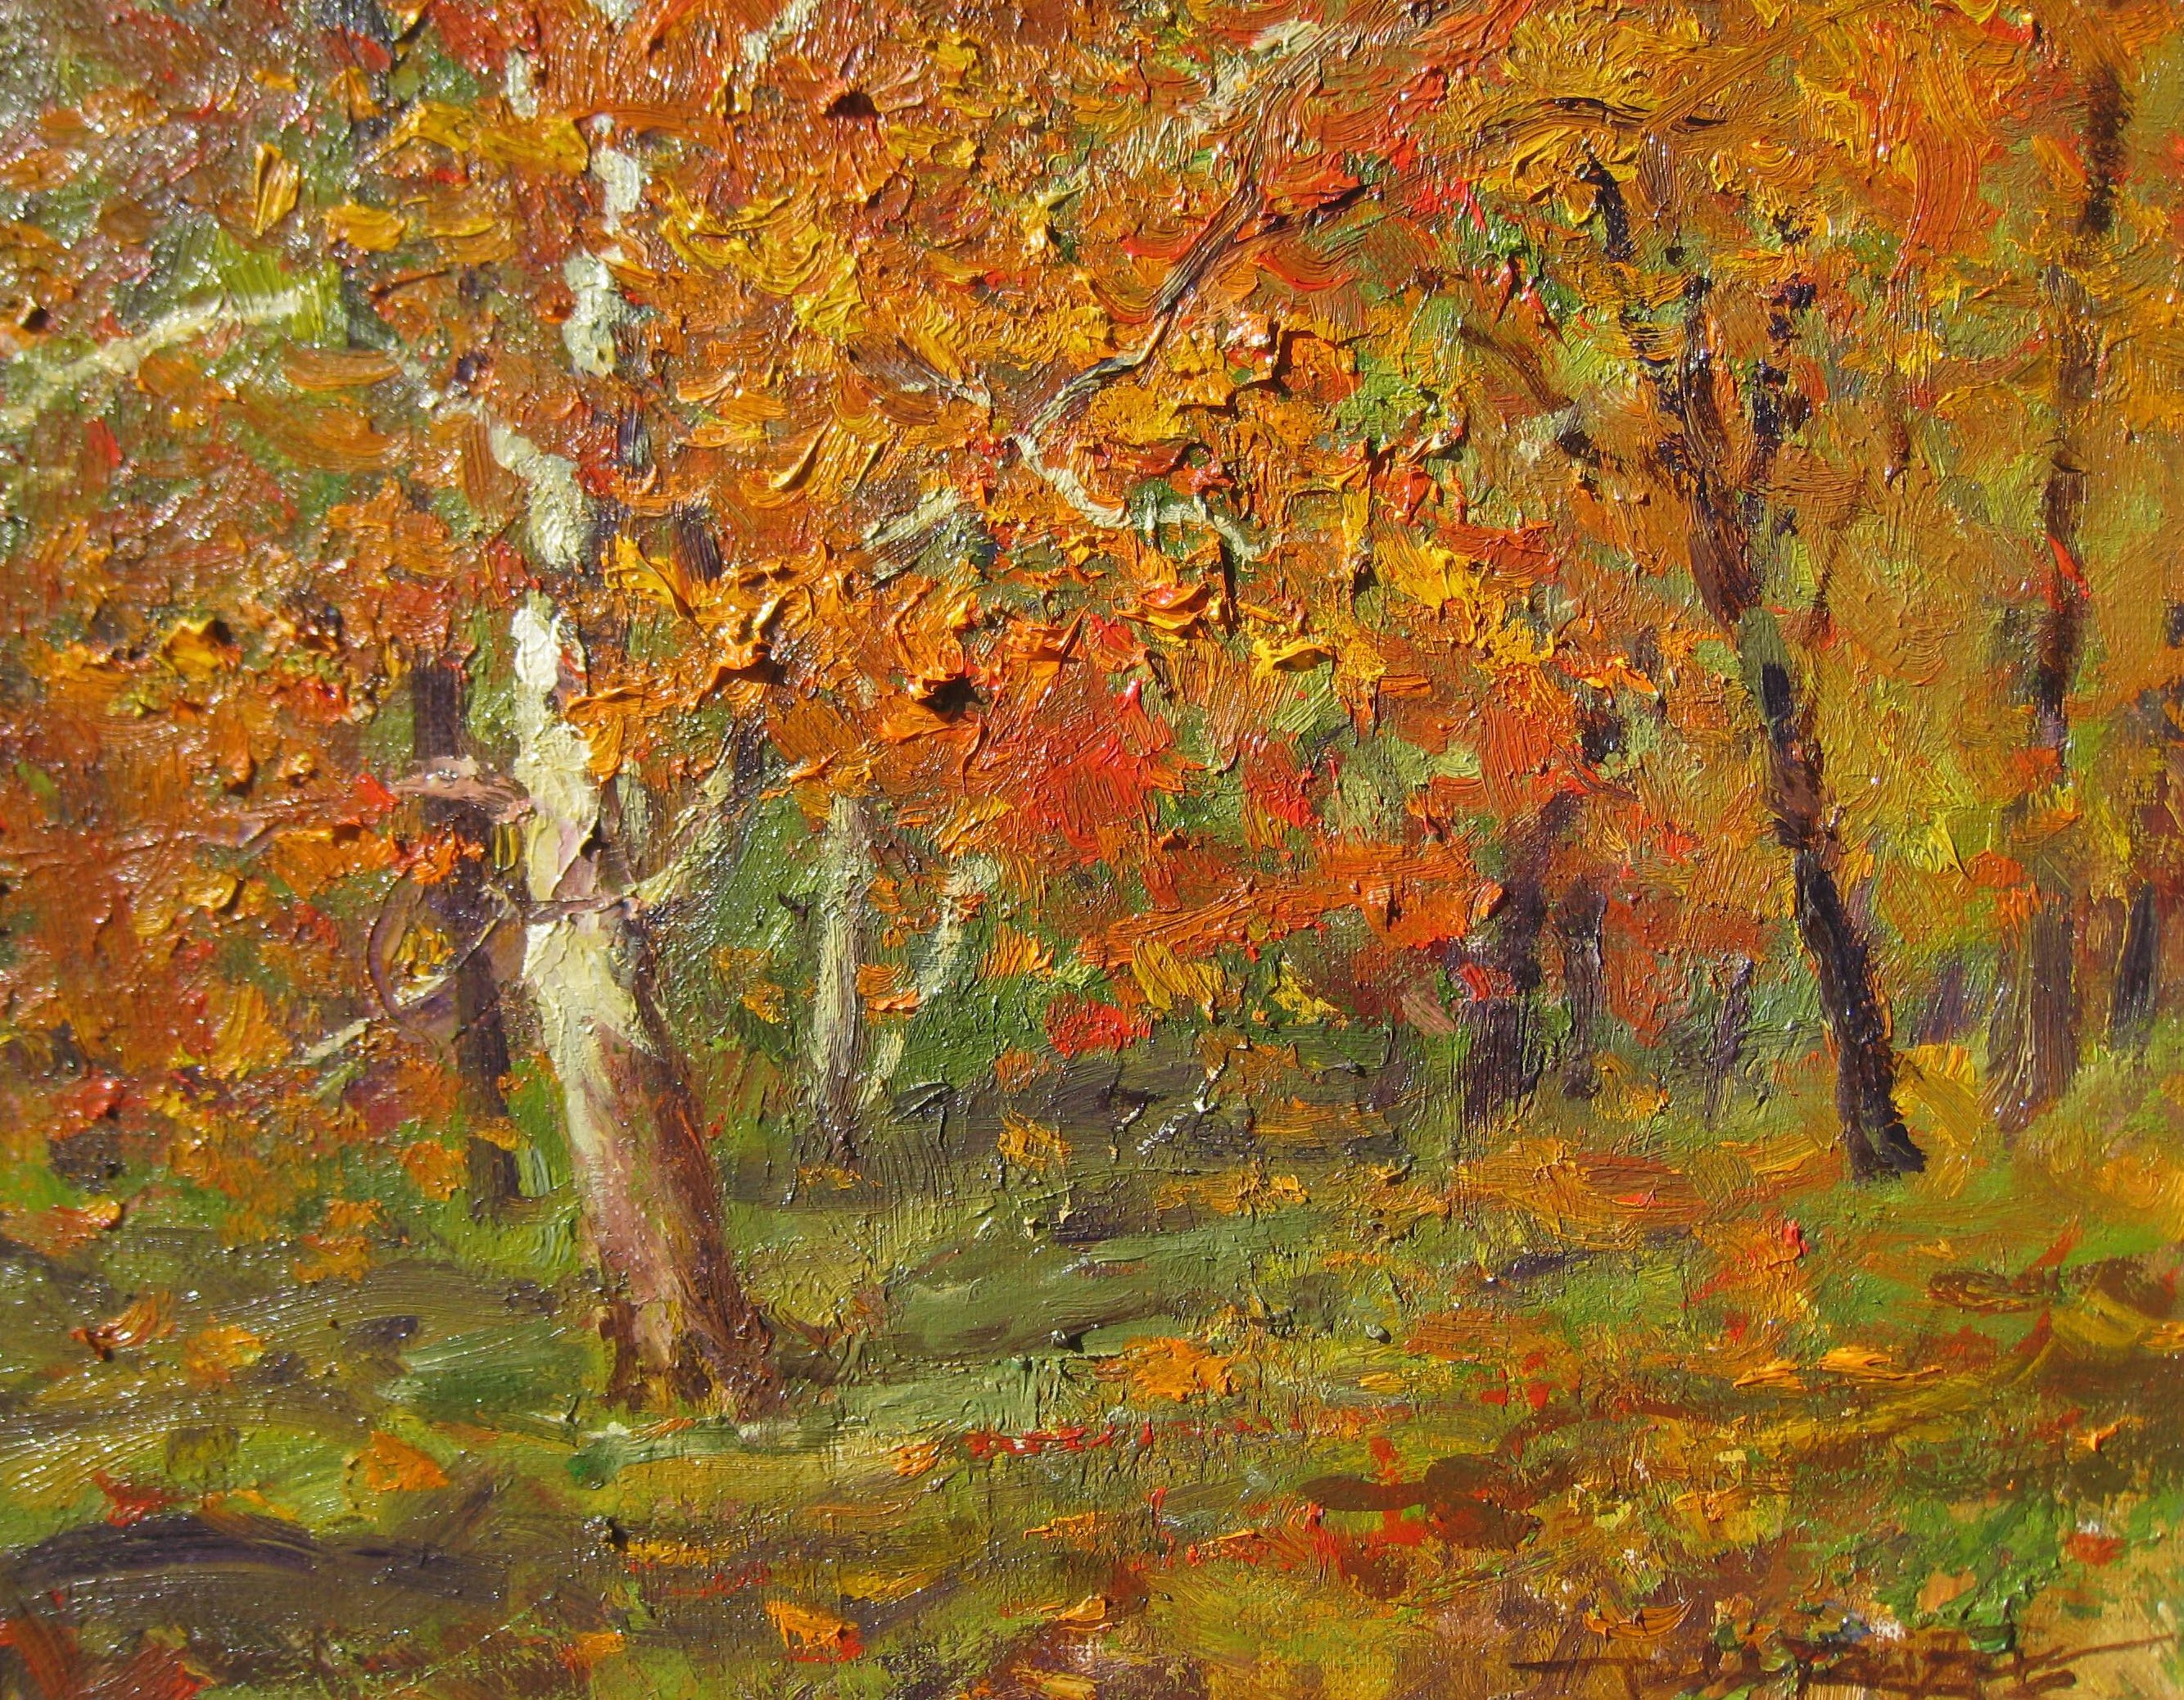 reifers-autumnsycamore-cropped